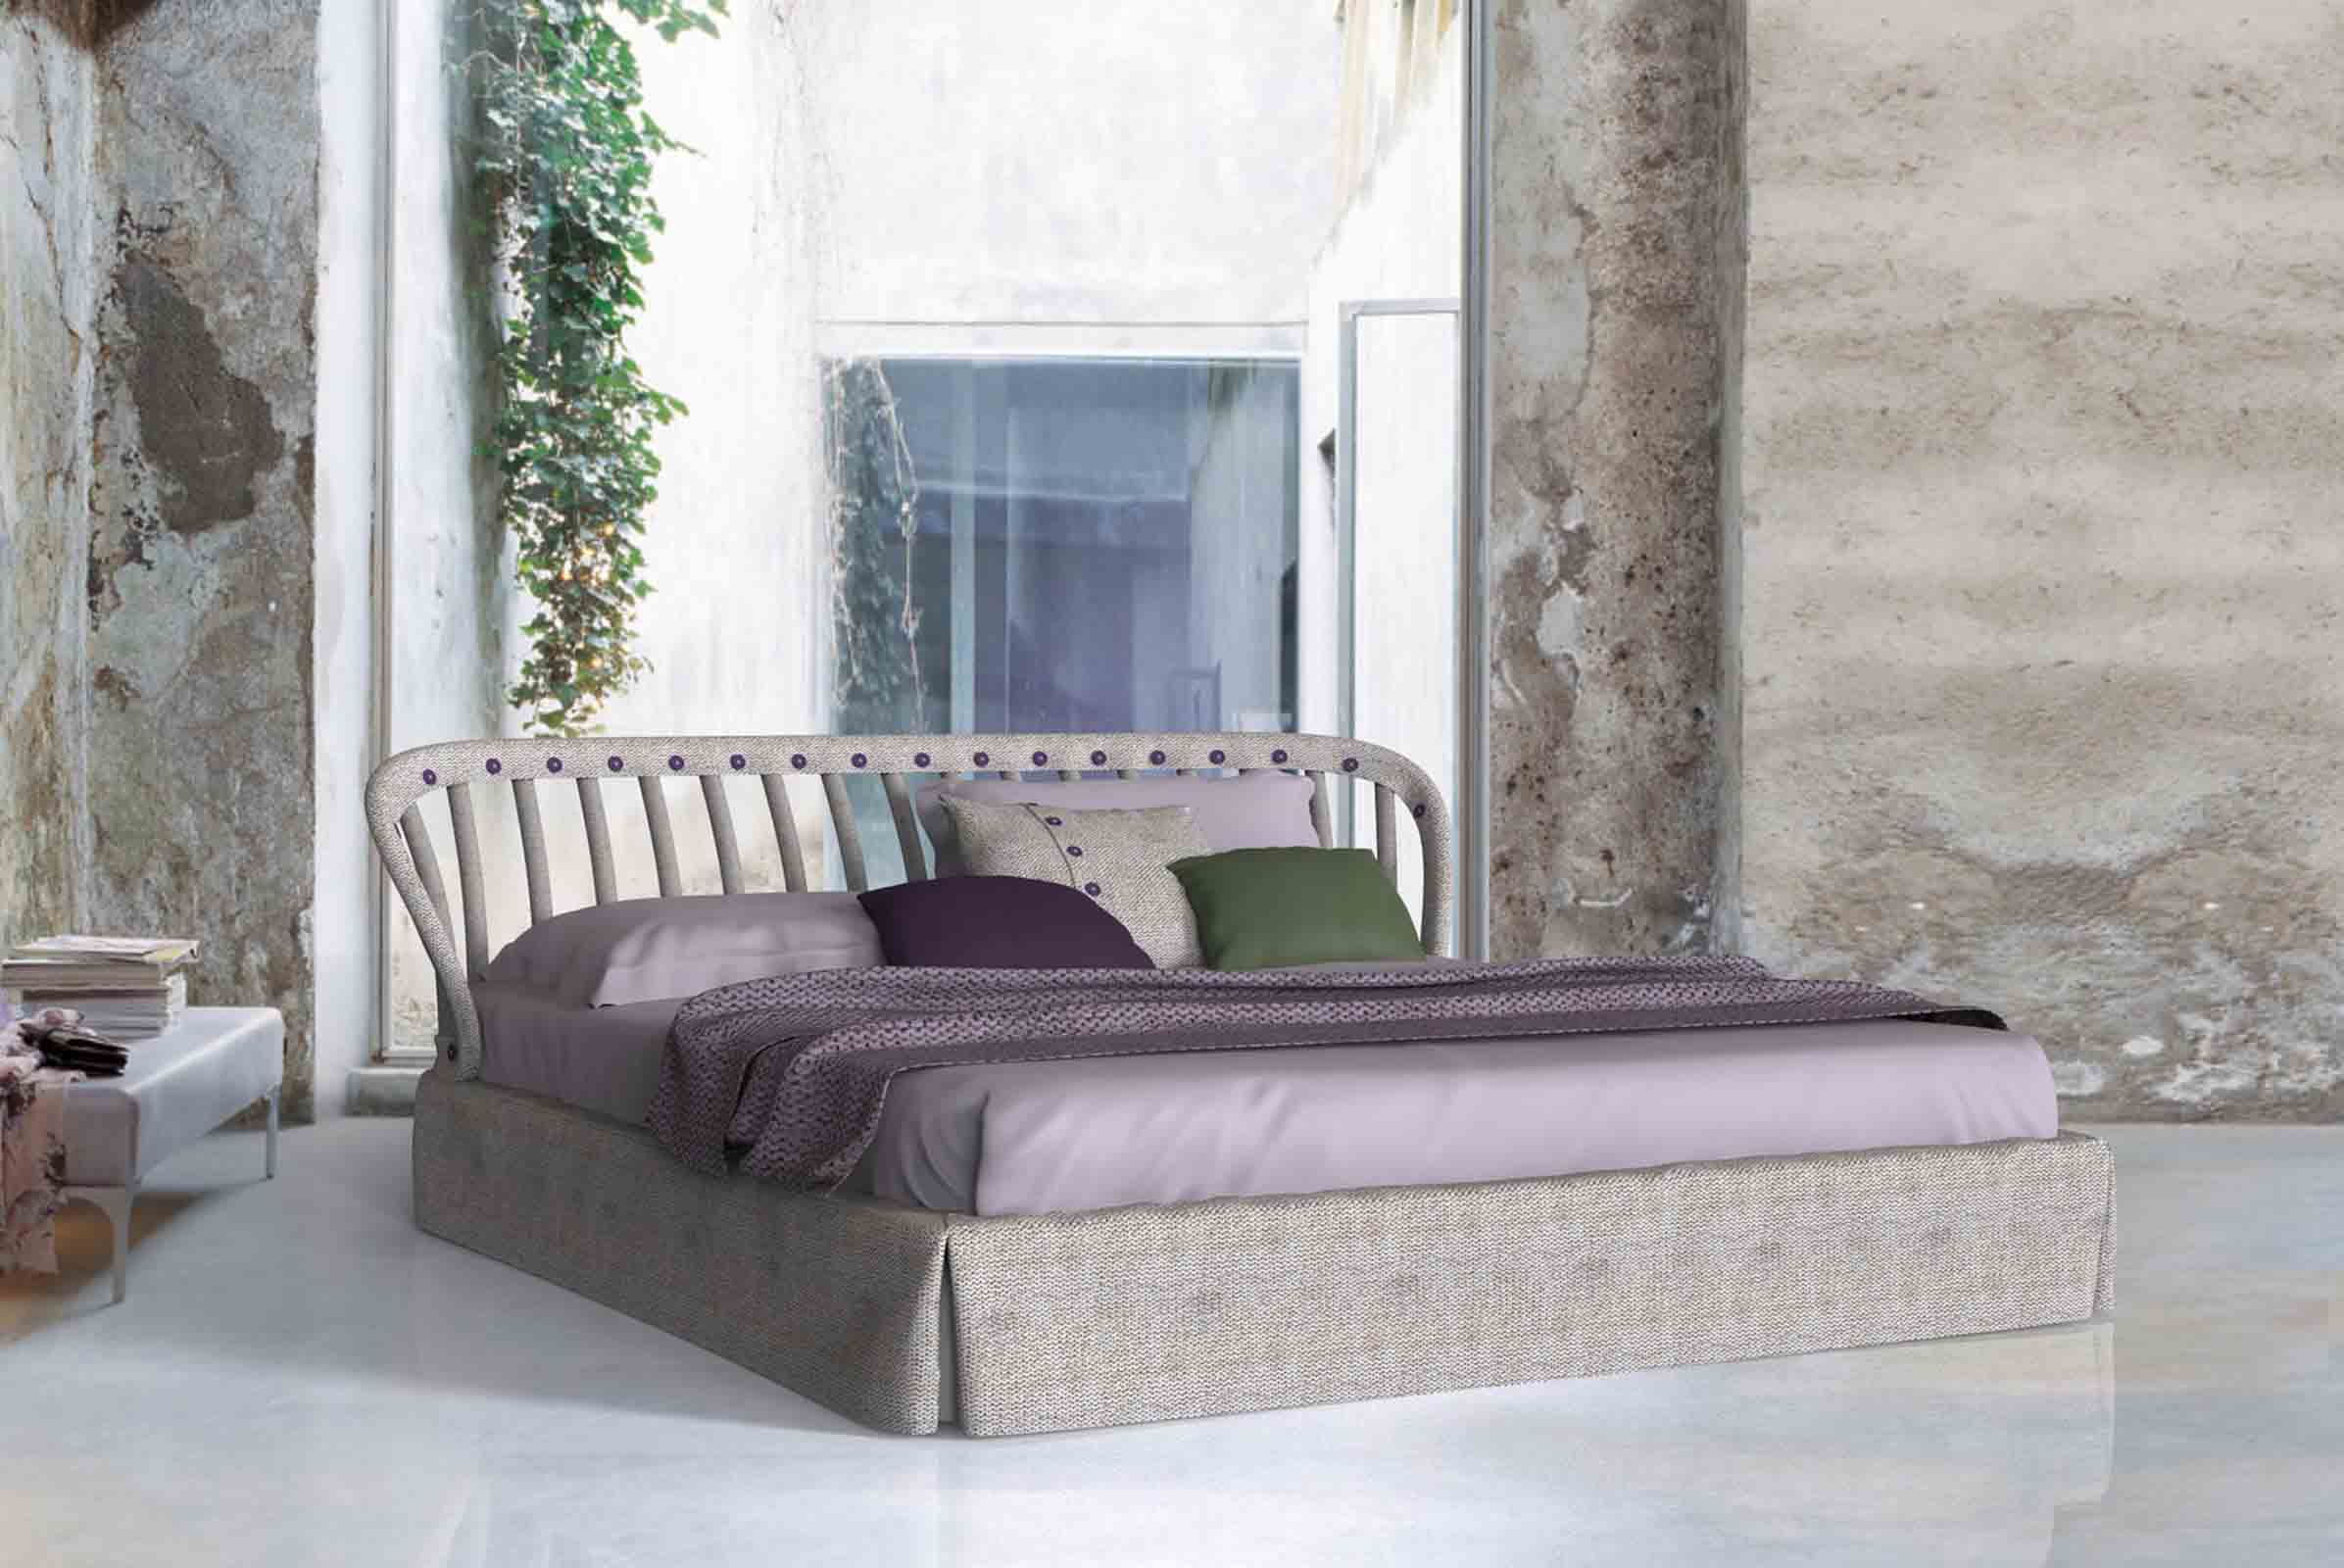 The 'Open Air' bed designed by  Meneghello Paolelli for Twils